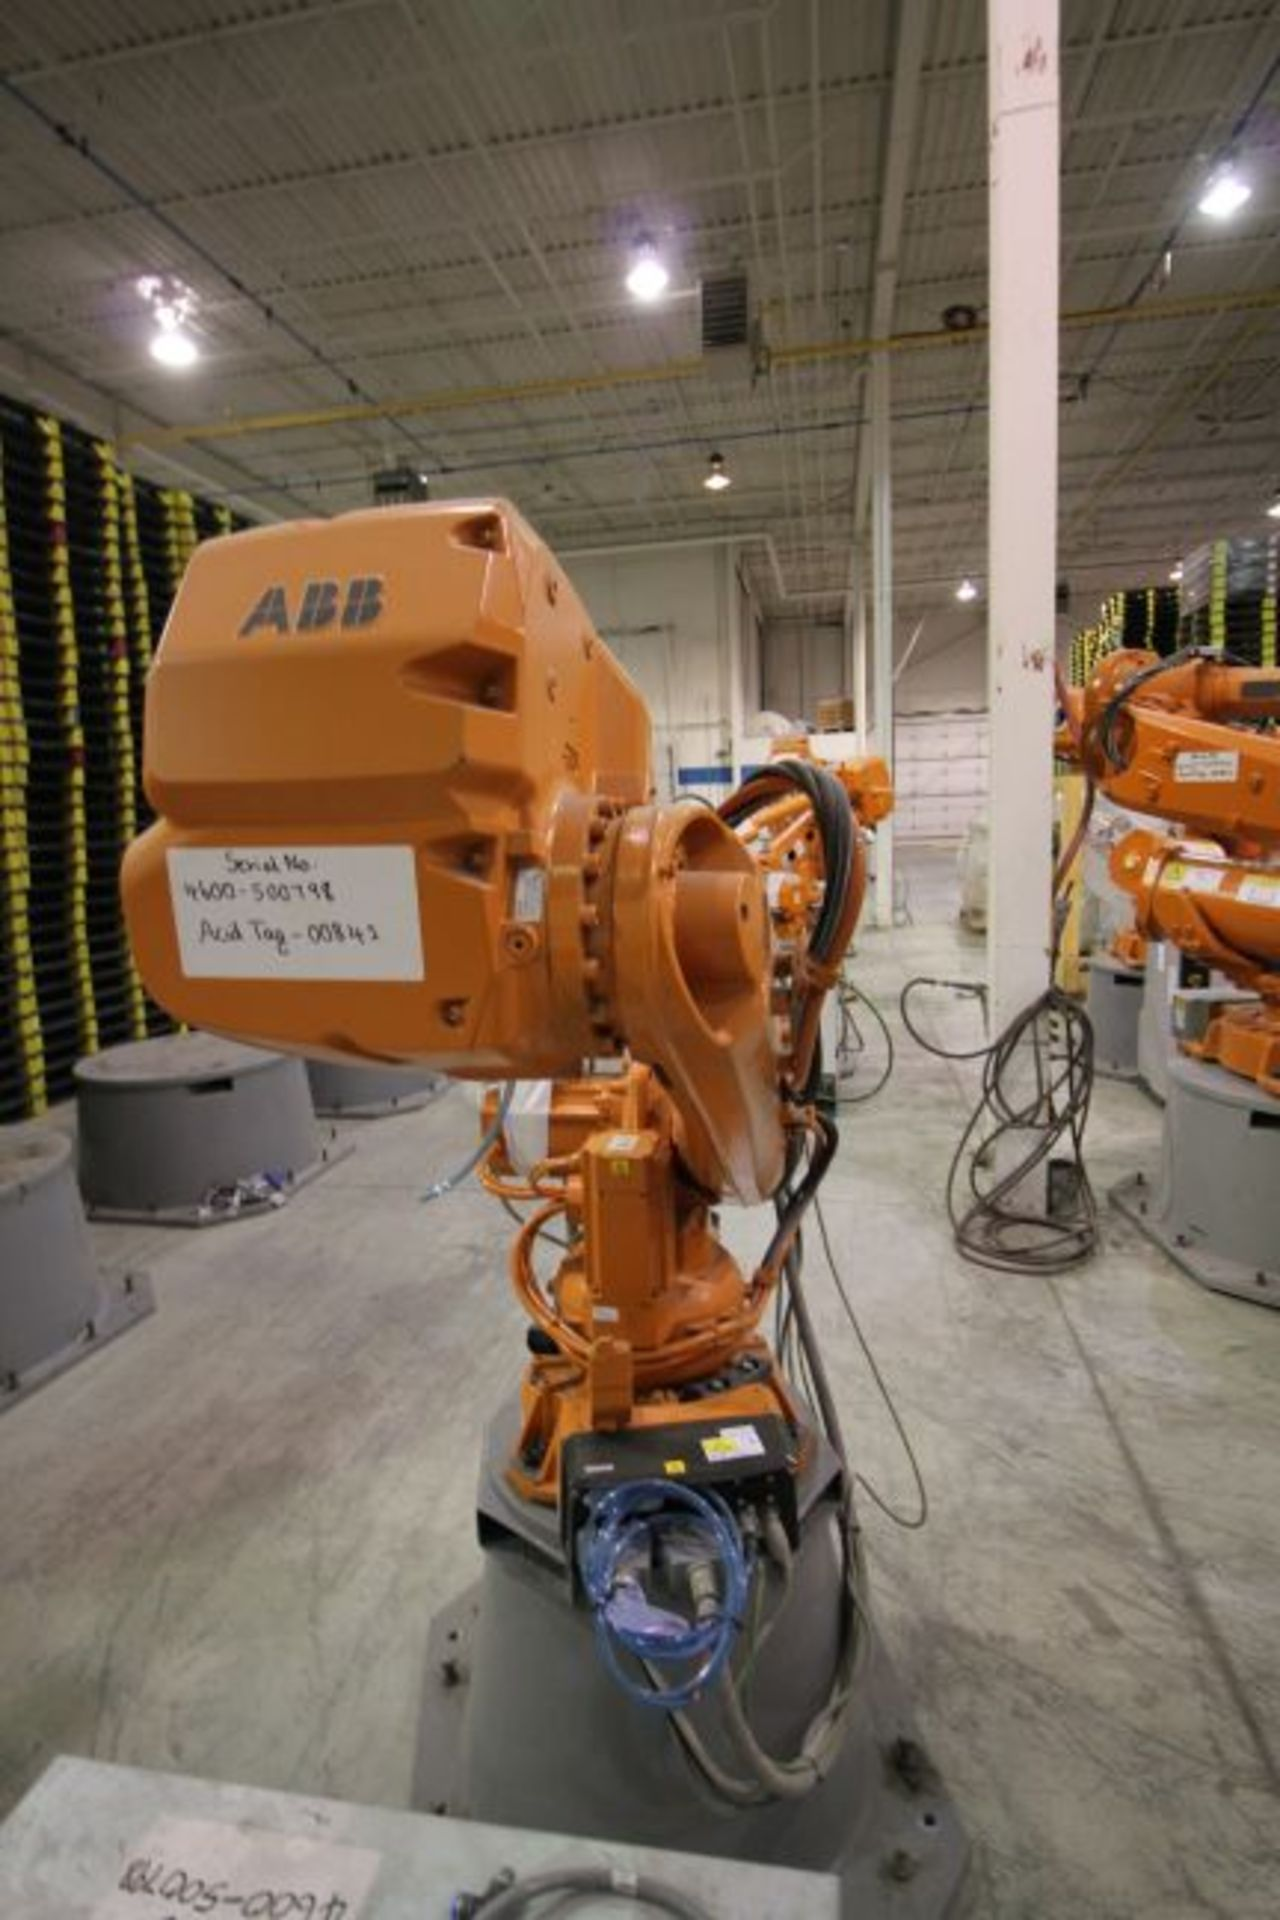 ABB ROBOT IRB 4600 2.55/40KG WITH IRC5 CONTROLS, YEAR 2014, SN 500798 TEACH PENDANT& CABLES - Image 3 of 9